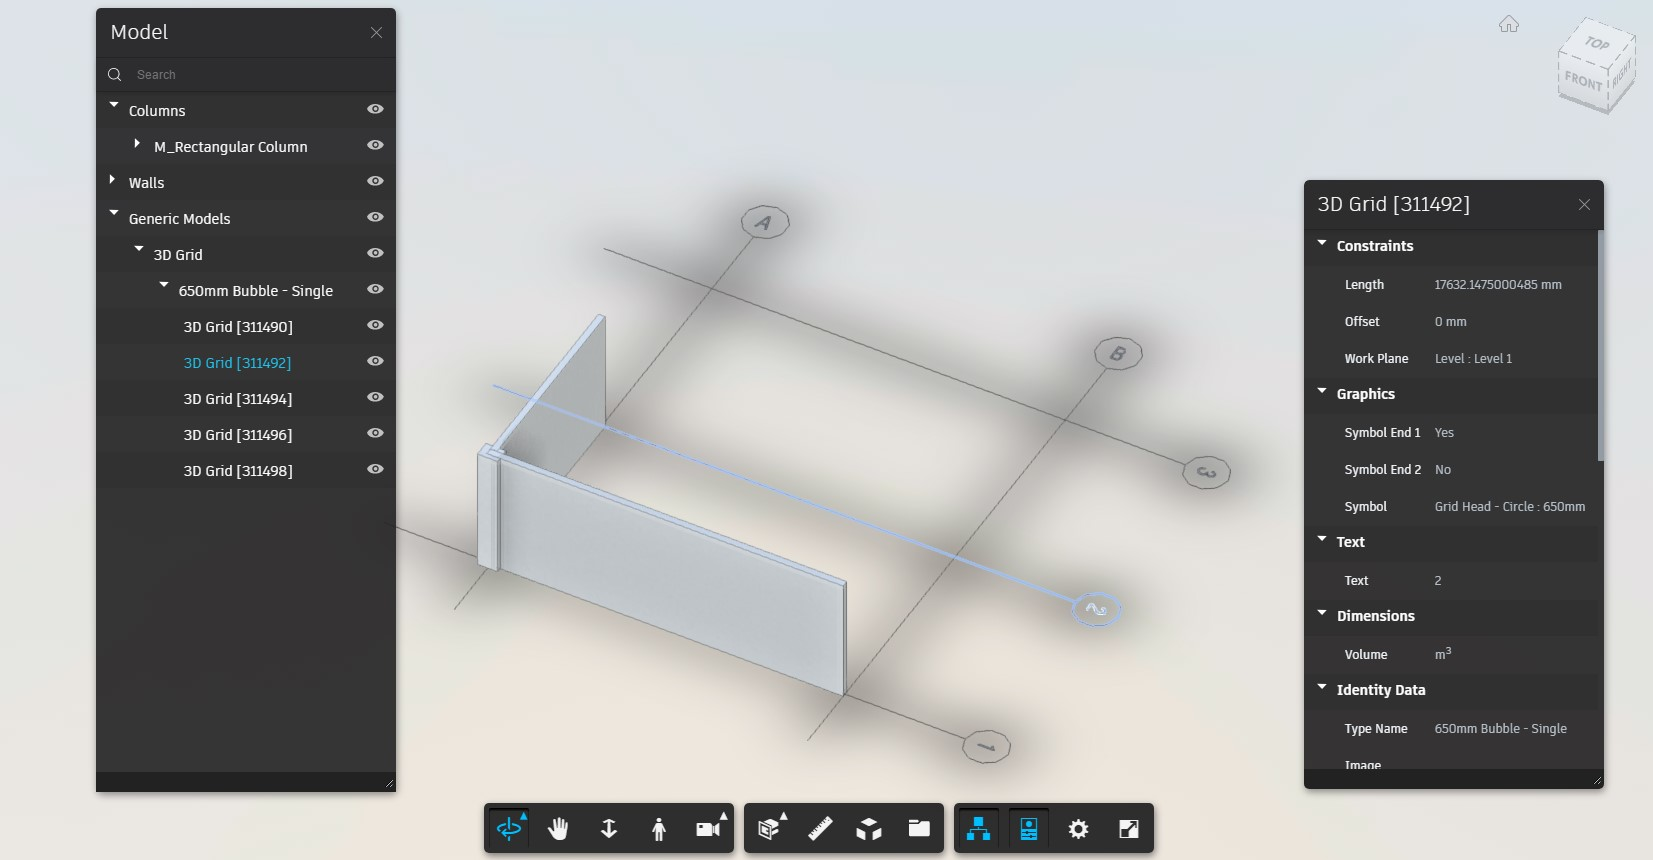 3D Grid in the viewer